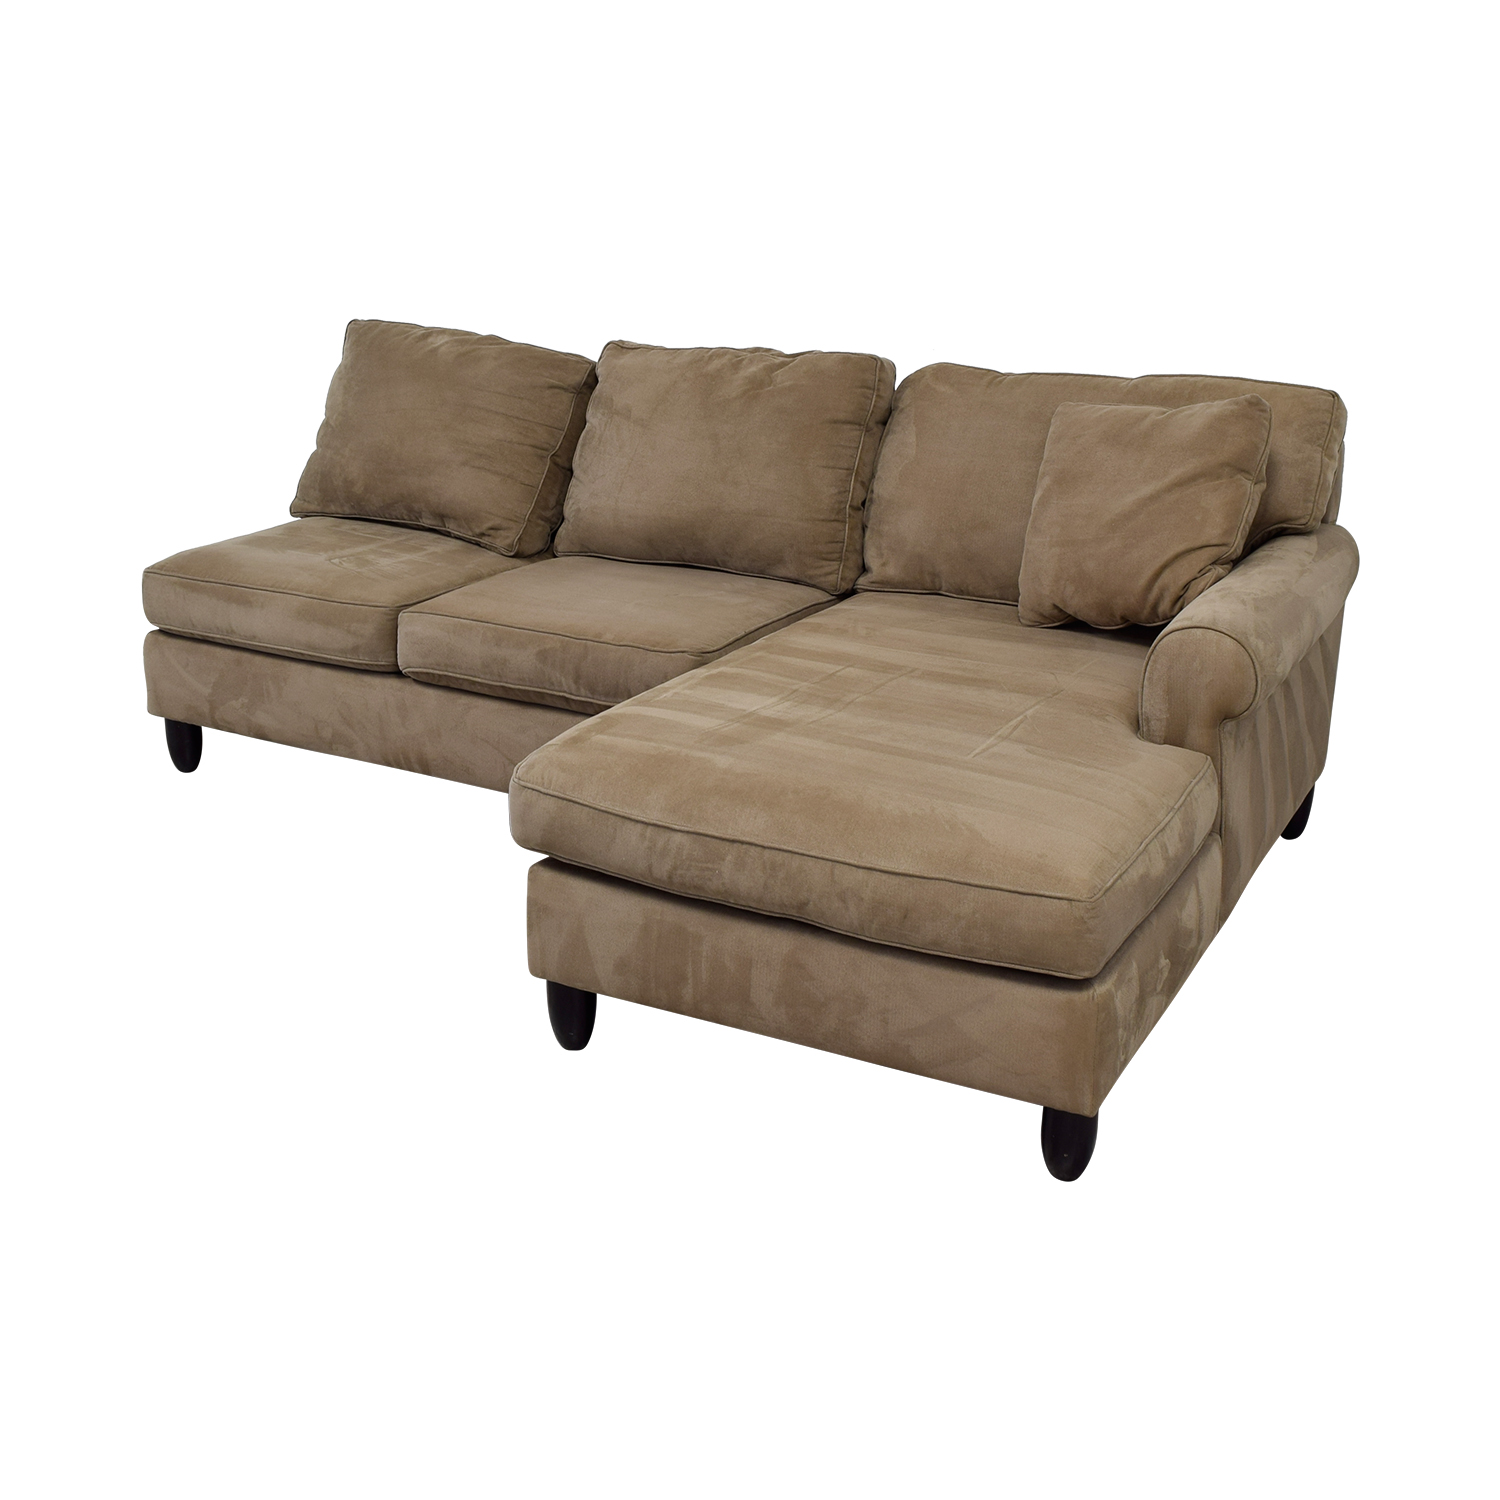 Peachy 90 Off Havertys Havertys Tan Chaise Sectional Sofas Pdpeps Interior Chair Design Pdpepsorg